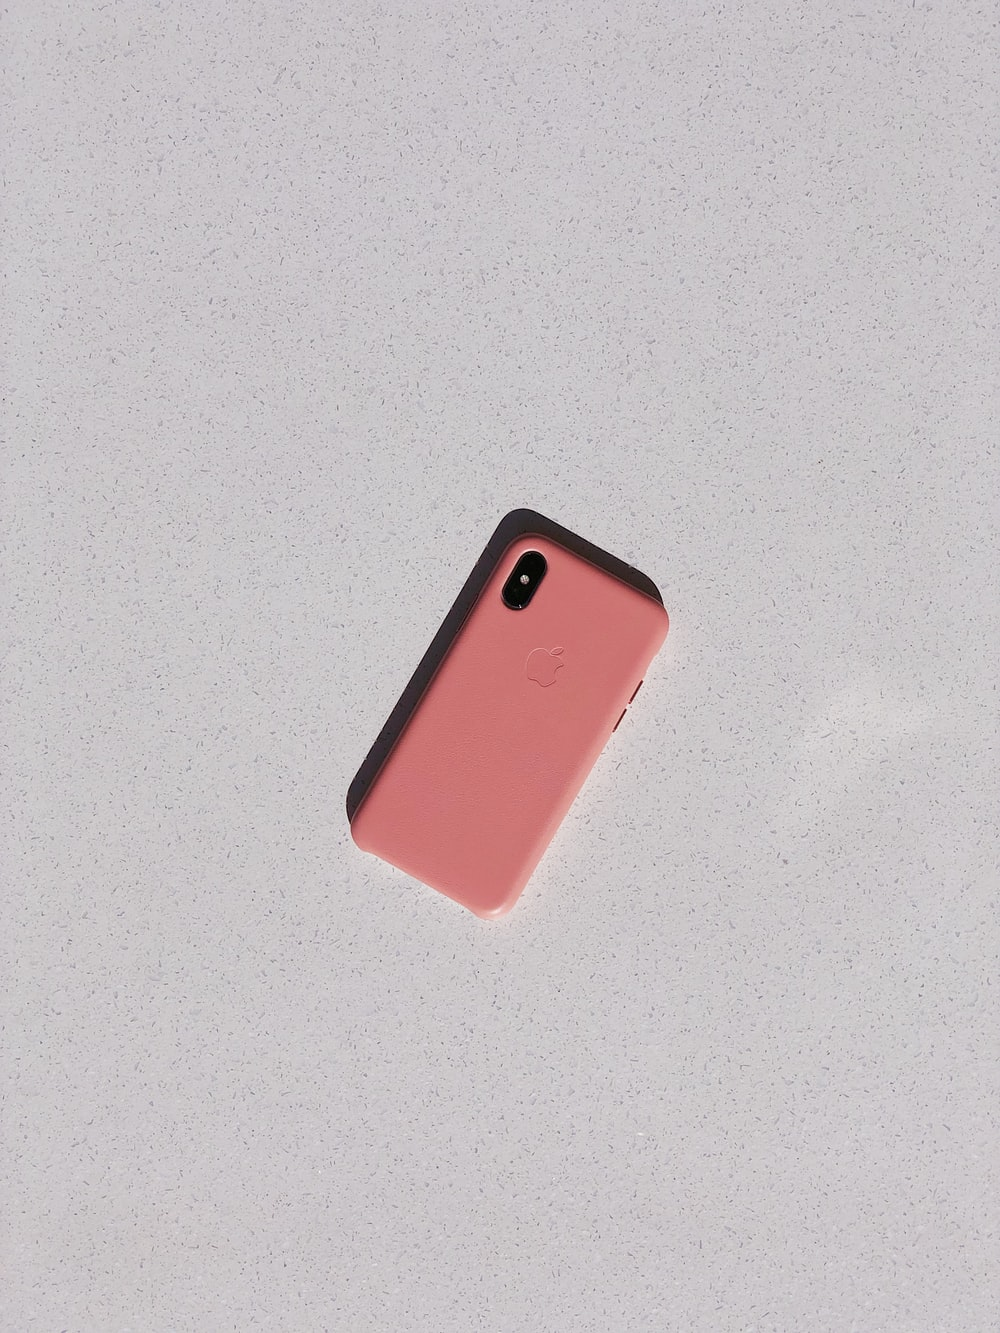 pink Android smartphone close-up photography